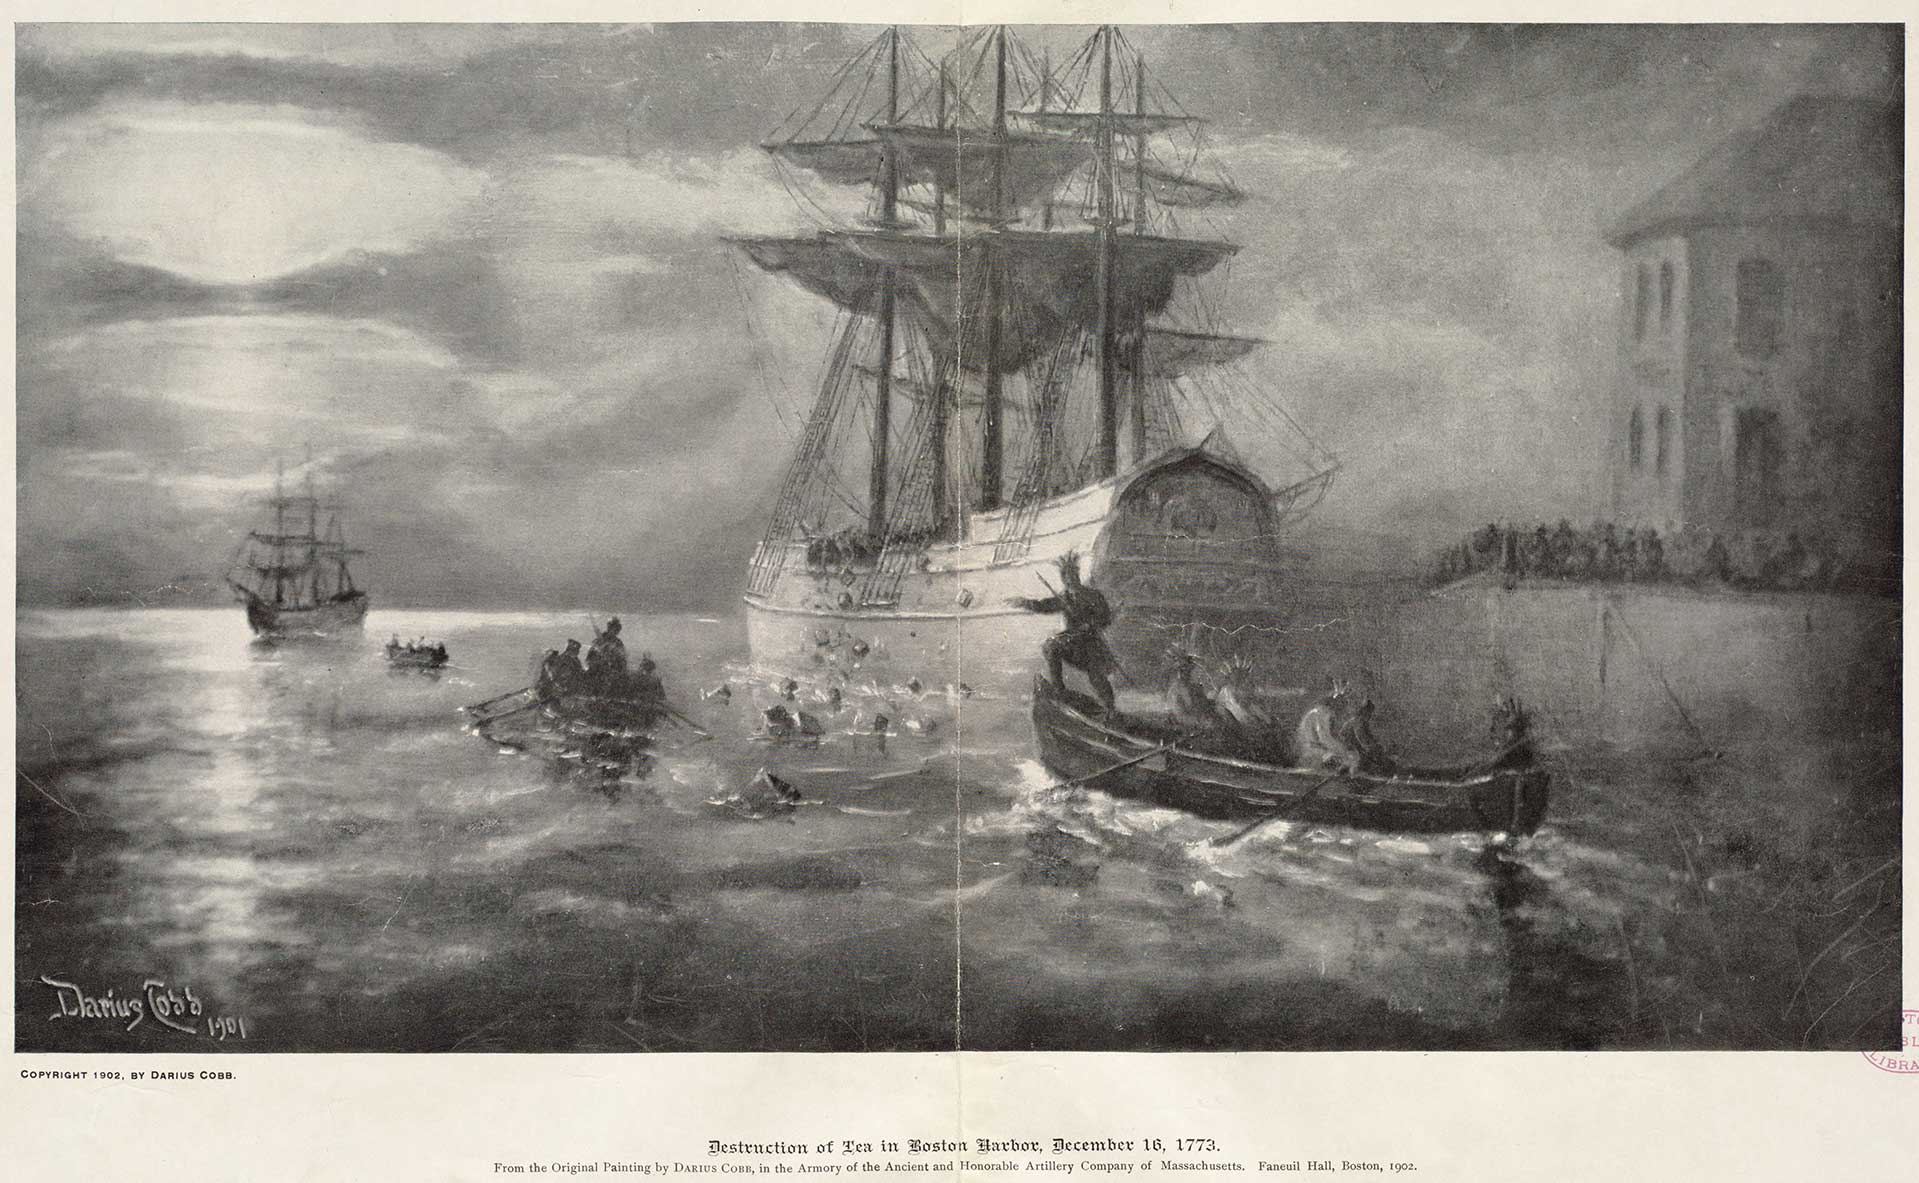 destruction of the tea in the boston harbor